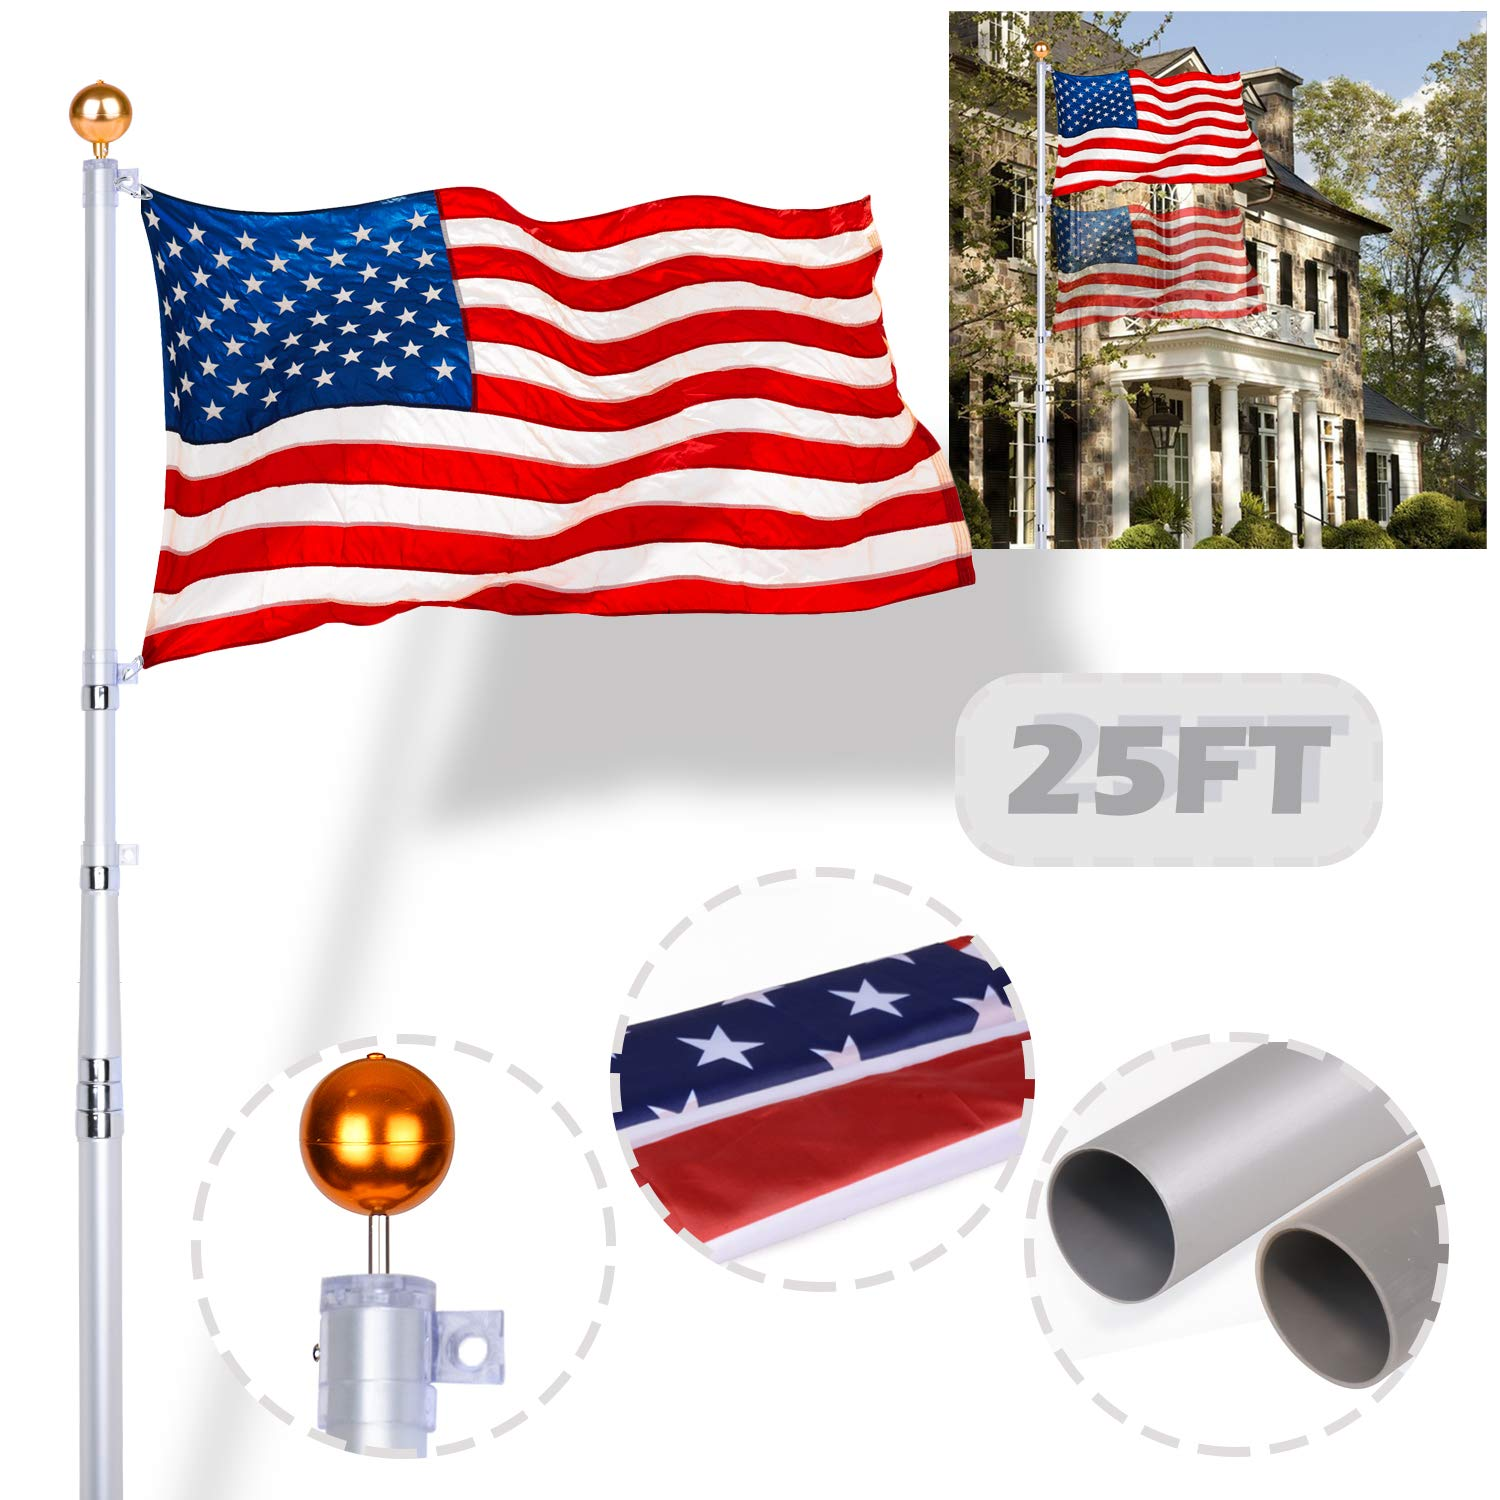 25 Ft Telescoping Thick Aluminum Flagpole Flag Pole Kit Can Fly 2 Flags Free 3'x5' US American Flag & Gold Ball Fly Top & Silver PVC Sleeve Great for Outdoor Home Garden Residential Commercial